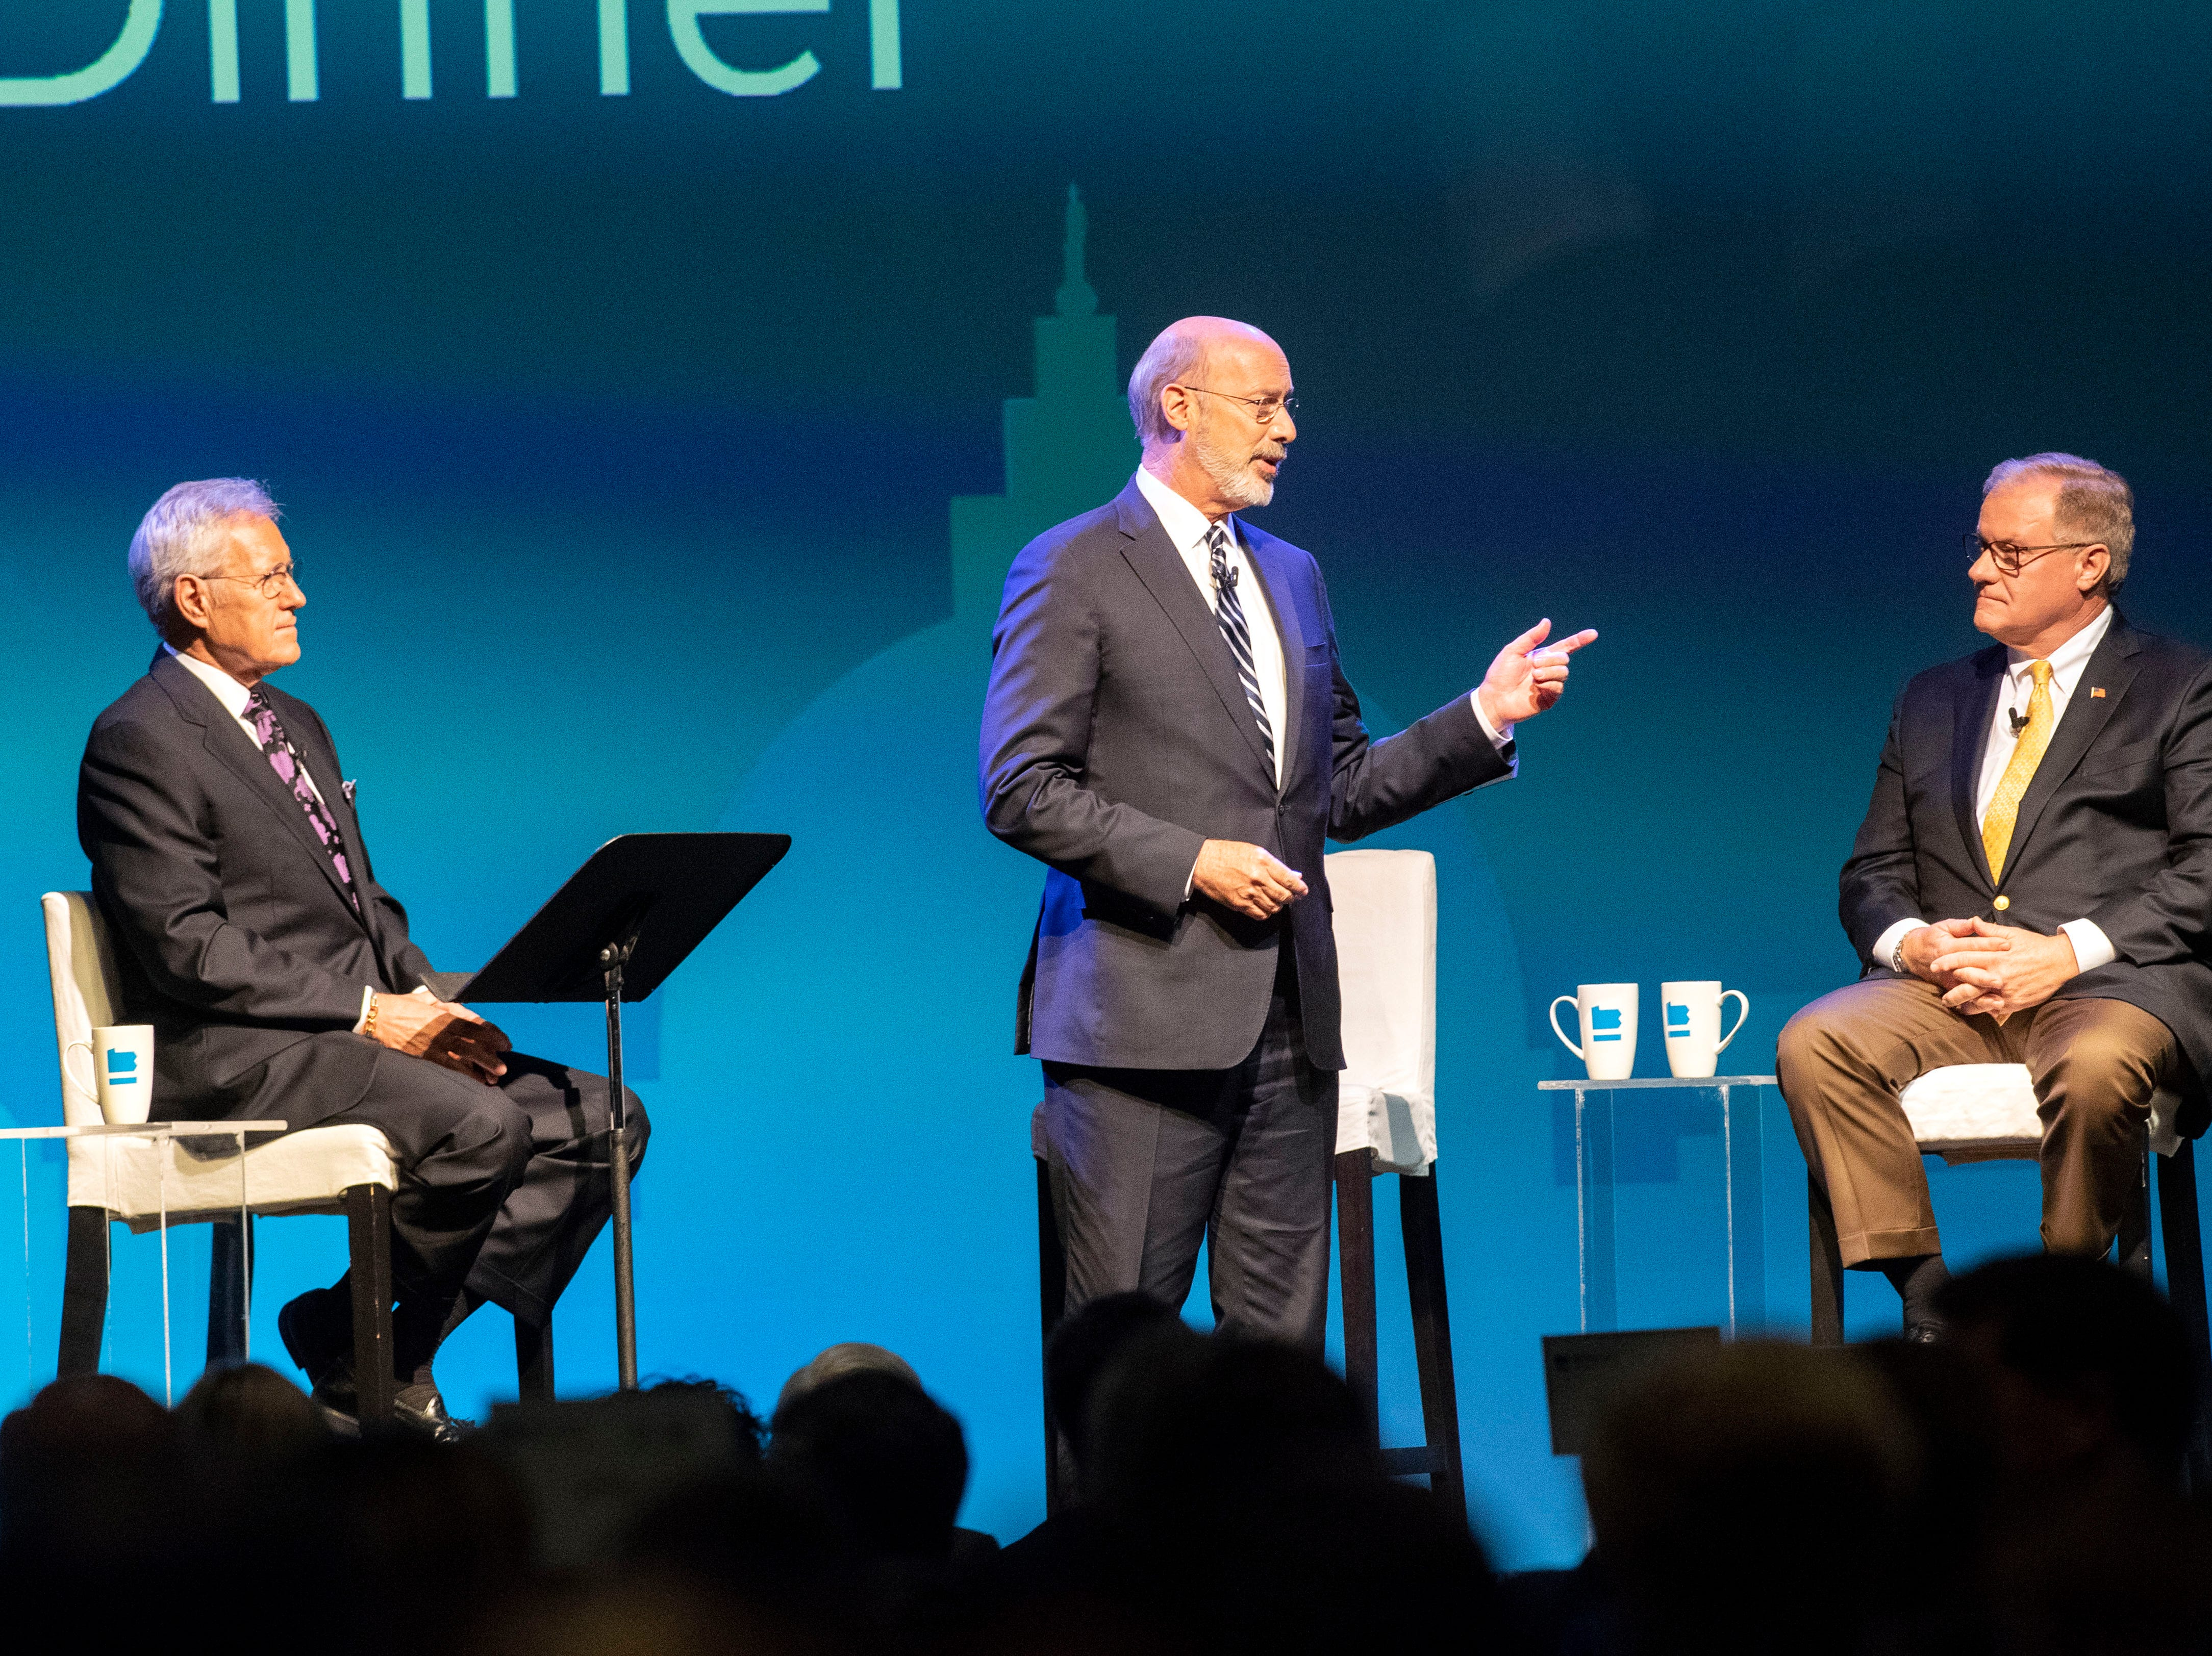 Democratic Gov. Tom Wolf, center, gives his closing remarks as Republican challenger Scott Wagner, right, and moderator Alex Trebek, of Jeopardy!, listen during the gubernatorial debate at Hershey Lodge on Monday, Oct. 1, 2018.